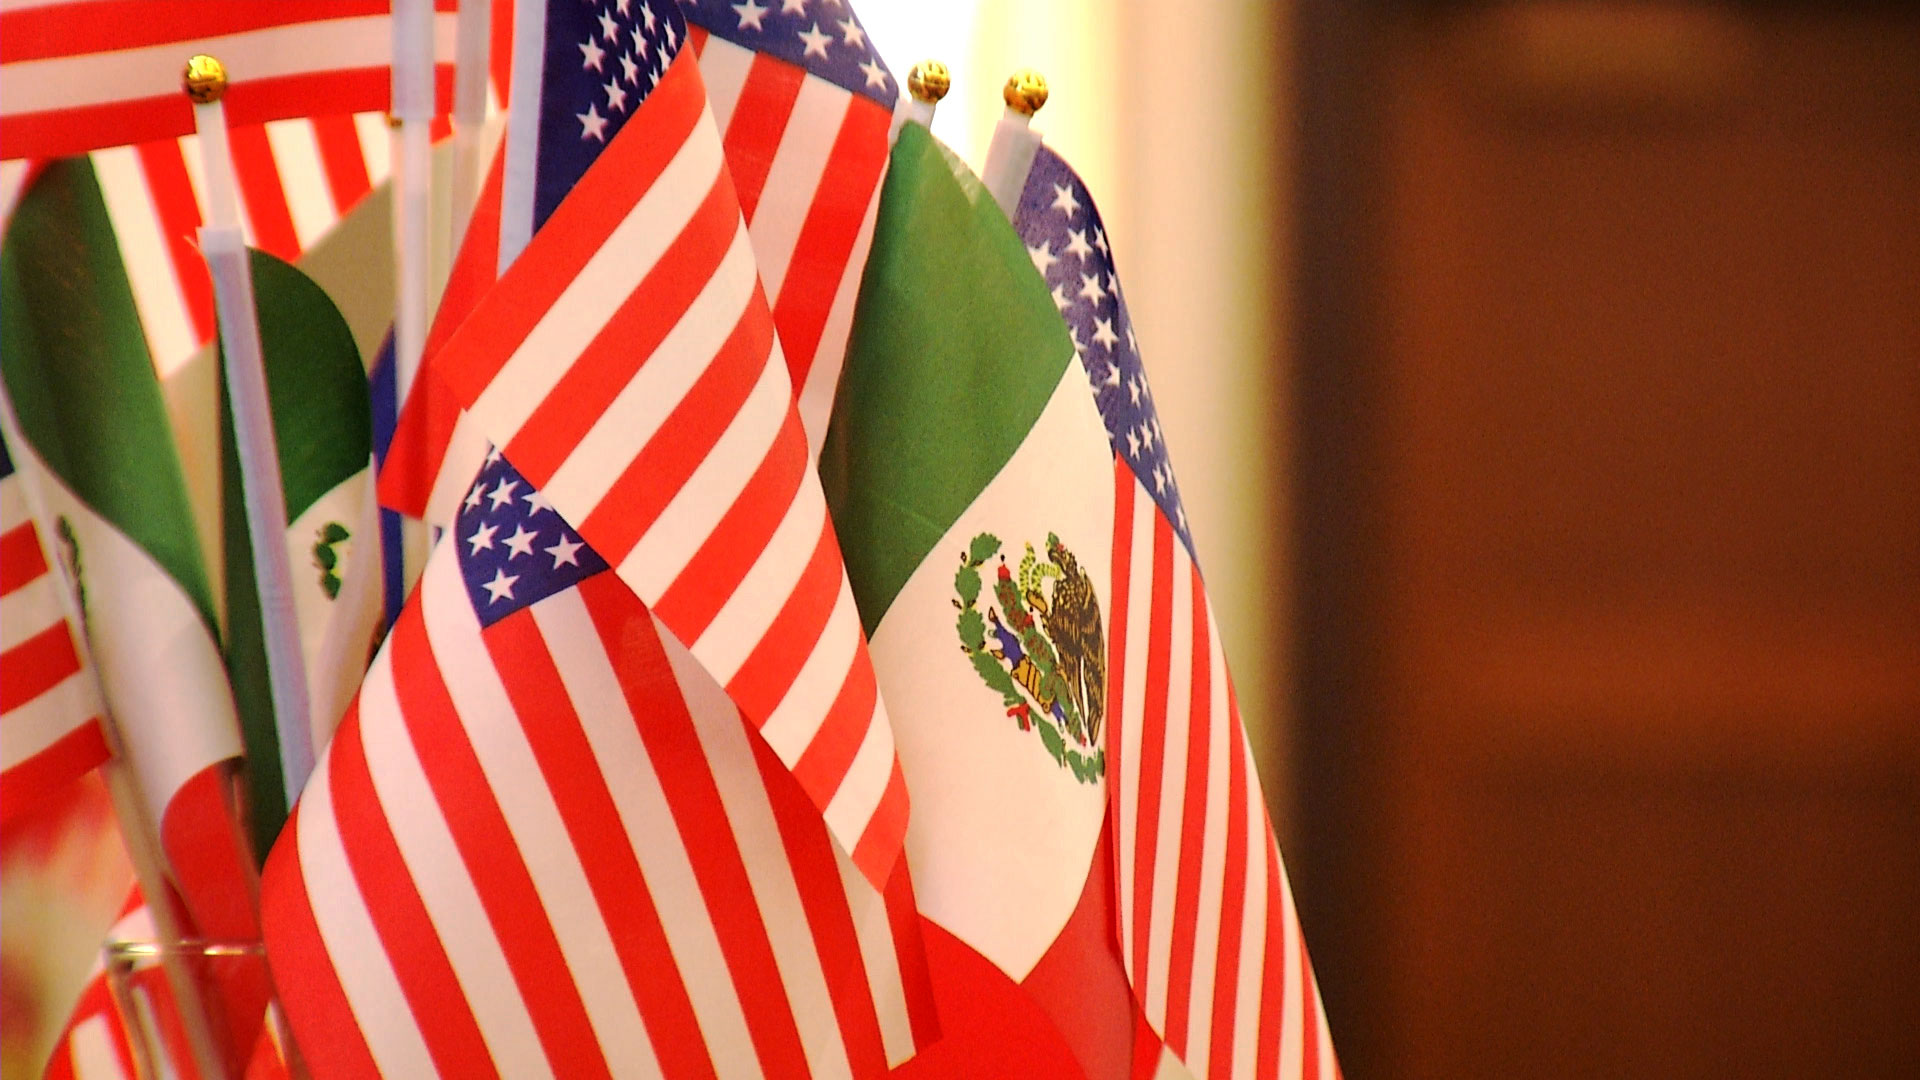 Flags representing the United States and Mexico are bundled together decoratively.